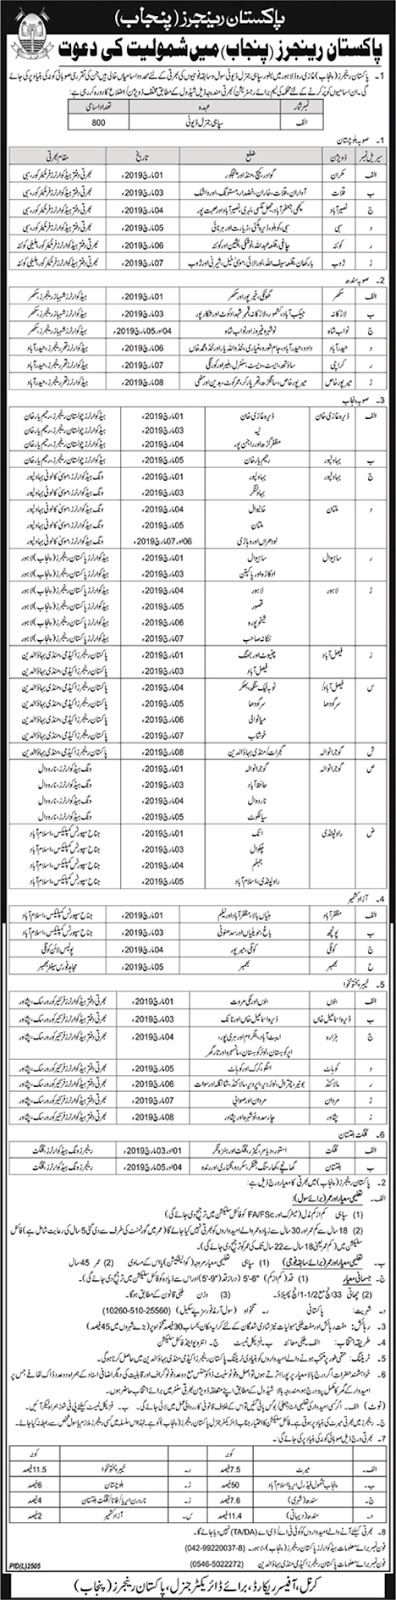 Pakistan Rangers Jobs 2019 800 Vacancies For General Duty Soldier Apply Now From all Pakistan